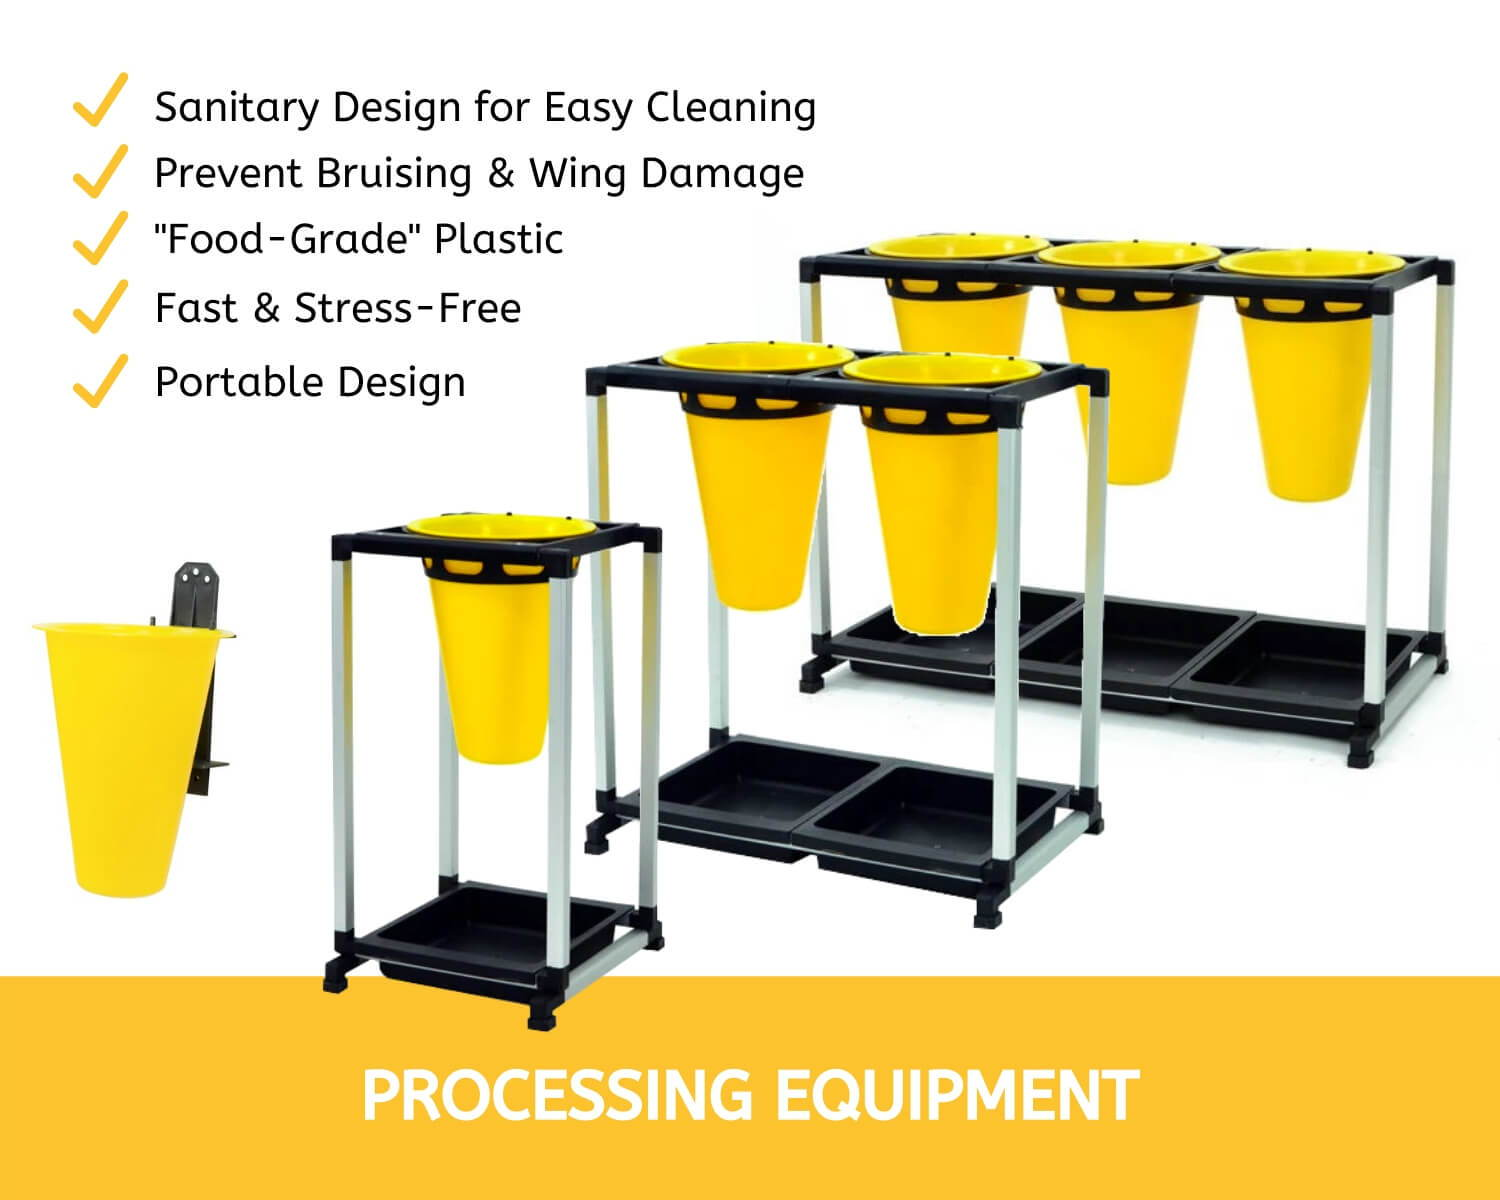 Processing Equipment - Cimuka Hatching Time